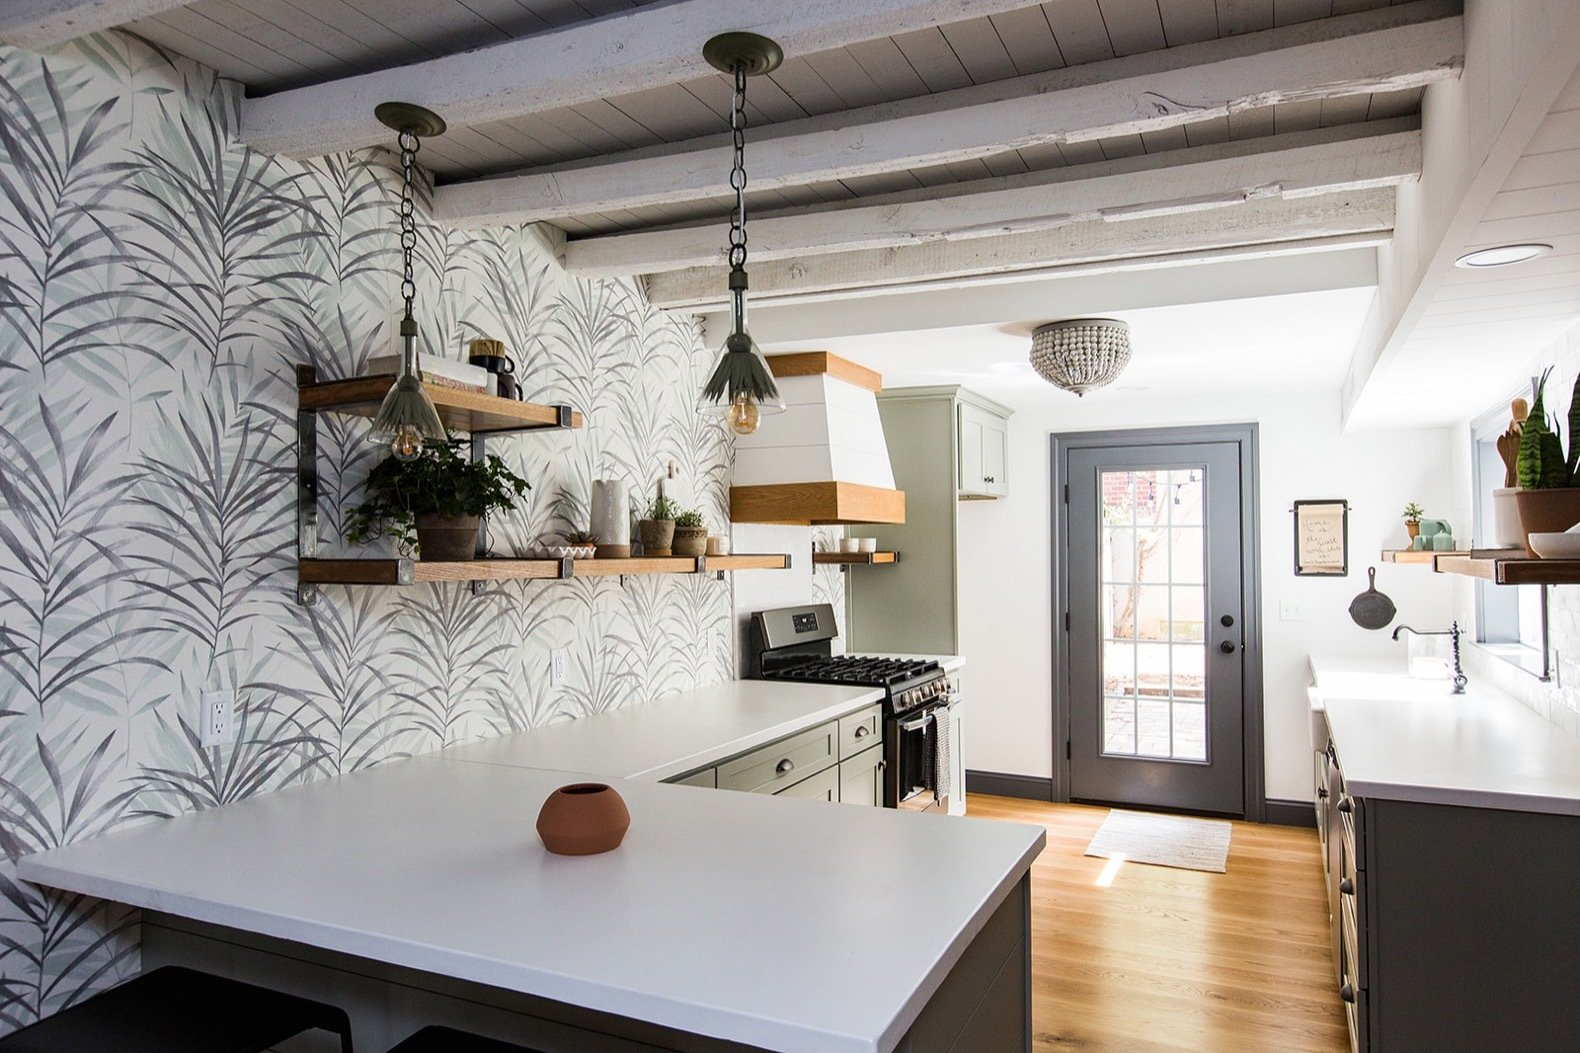 Kitchen, Concrete, Range, Medium Hardwood, Wood, Brick, Pendant, Ceiling, Colorful, Vessel, and Range Hood To create more natural light, Brentwood Builders also added a back door to the kitchen.    Best Kitchen Wood Brick Photos from Before & After: A Dark 1880s Row Home Gets an Airy Makeover